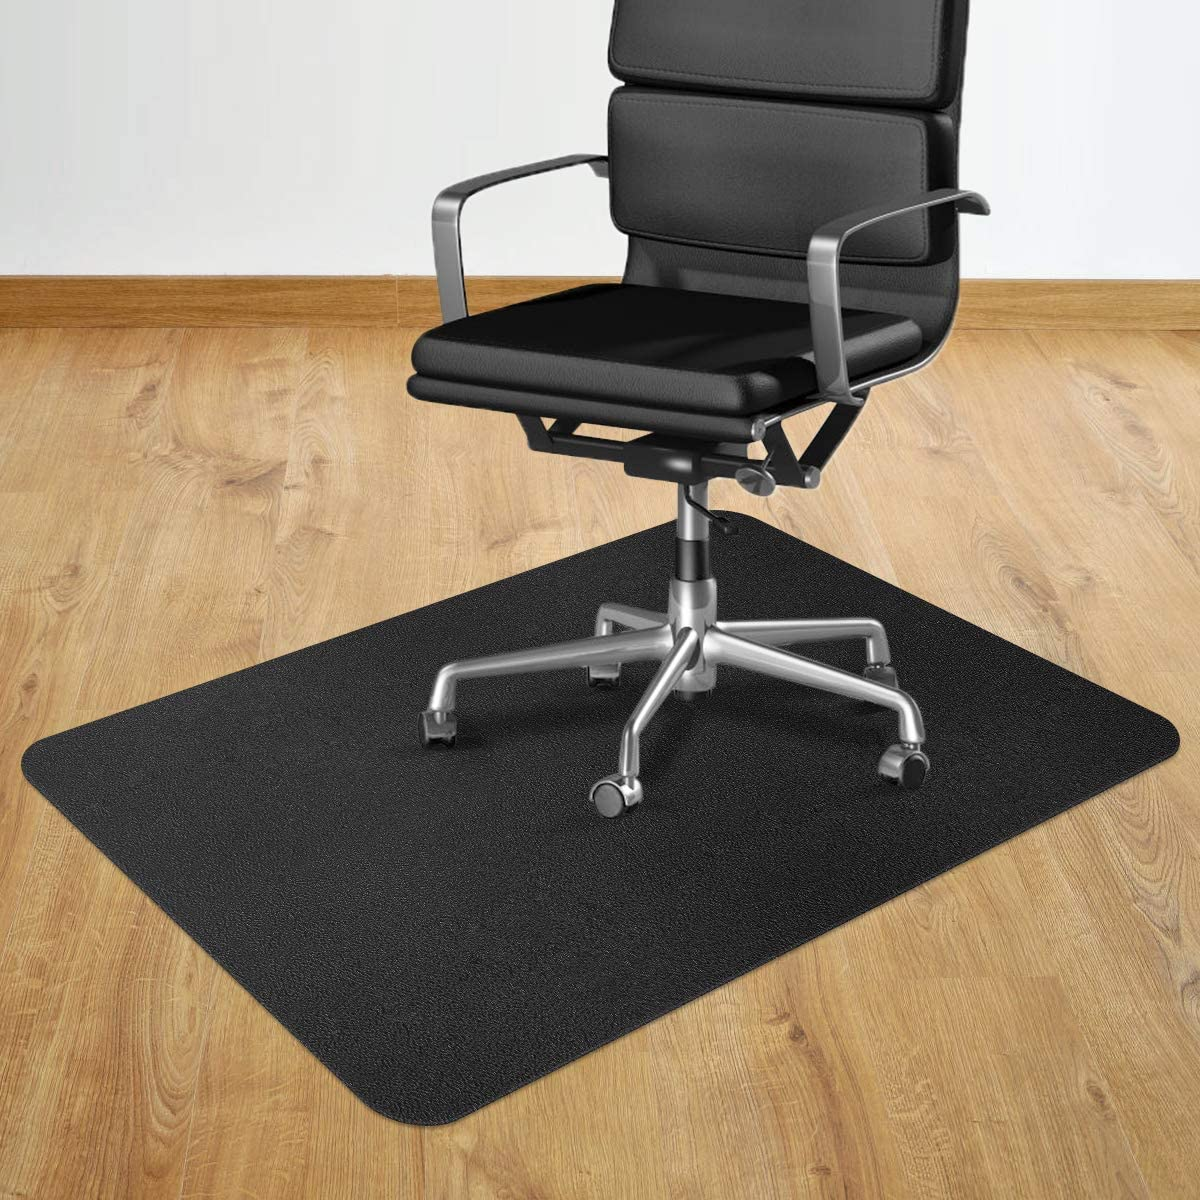 Chair service Mat online shop for Hardwood and Tile 36x48 inches Edg Floor Straight